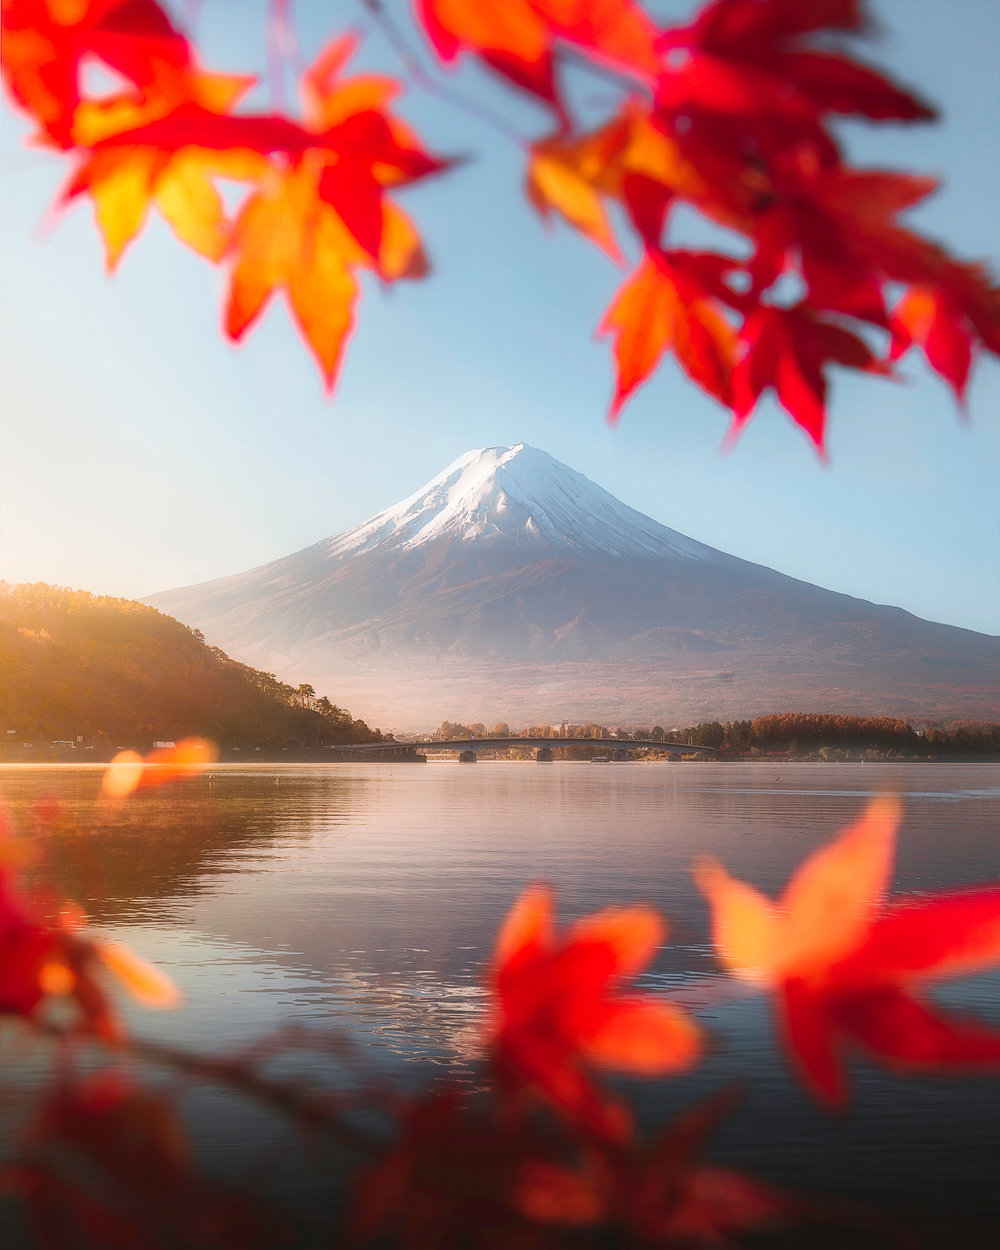 Visiting in the Autumn means catching the beautiful foliage as it changes colours. This was shot from Lake Kawaguchi with the foliage framing Mt. Fuji in the background.